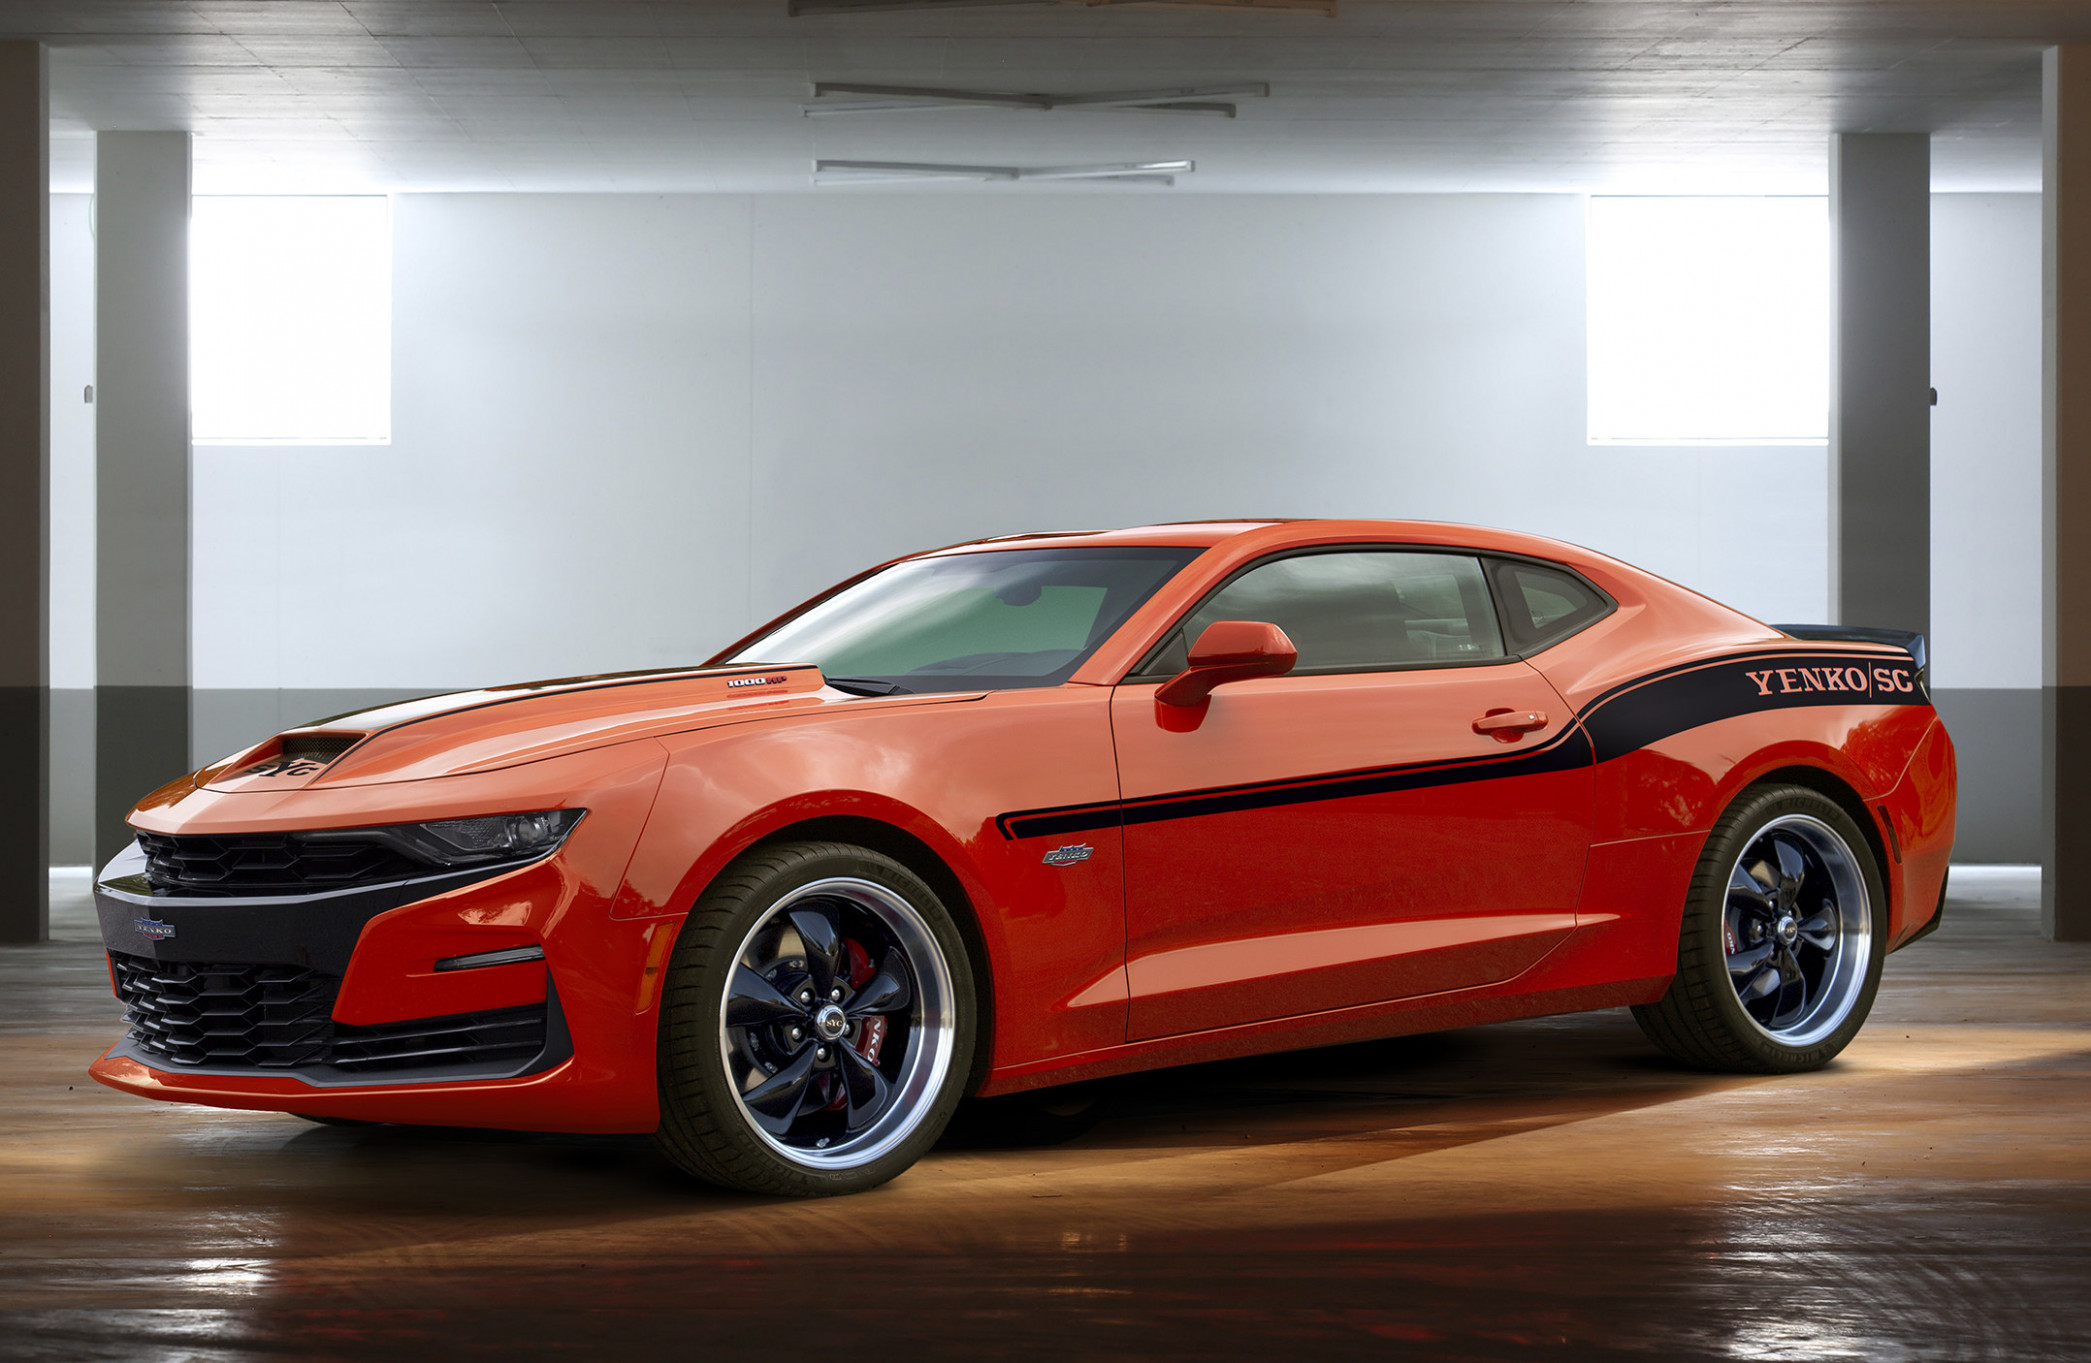 The 7 Yenko Chevy Camaro Is A 7,7 HP Monstrosity Of A Muscle ..